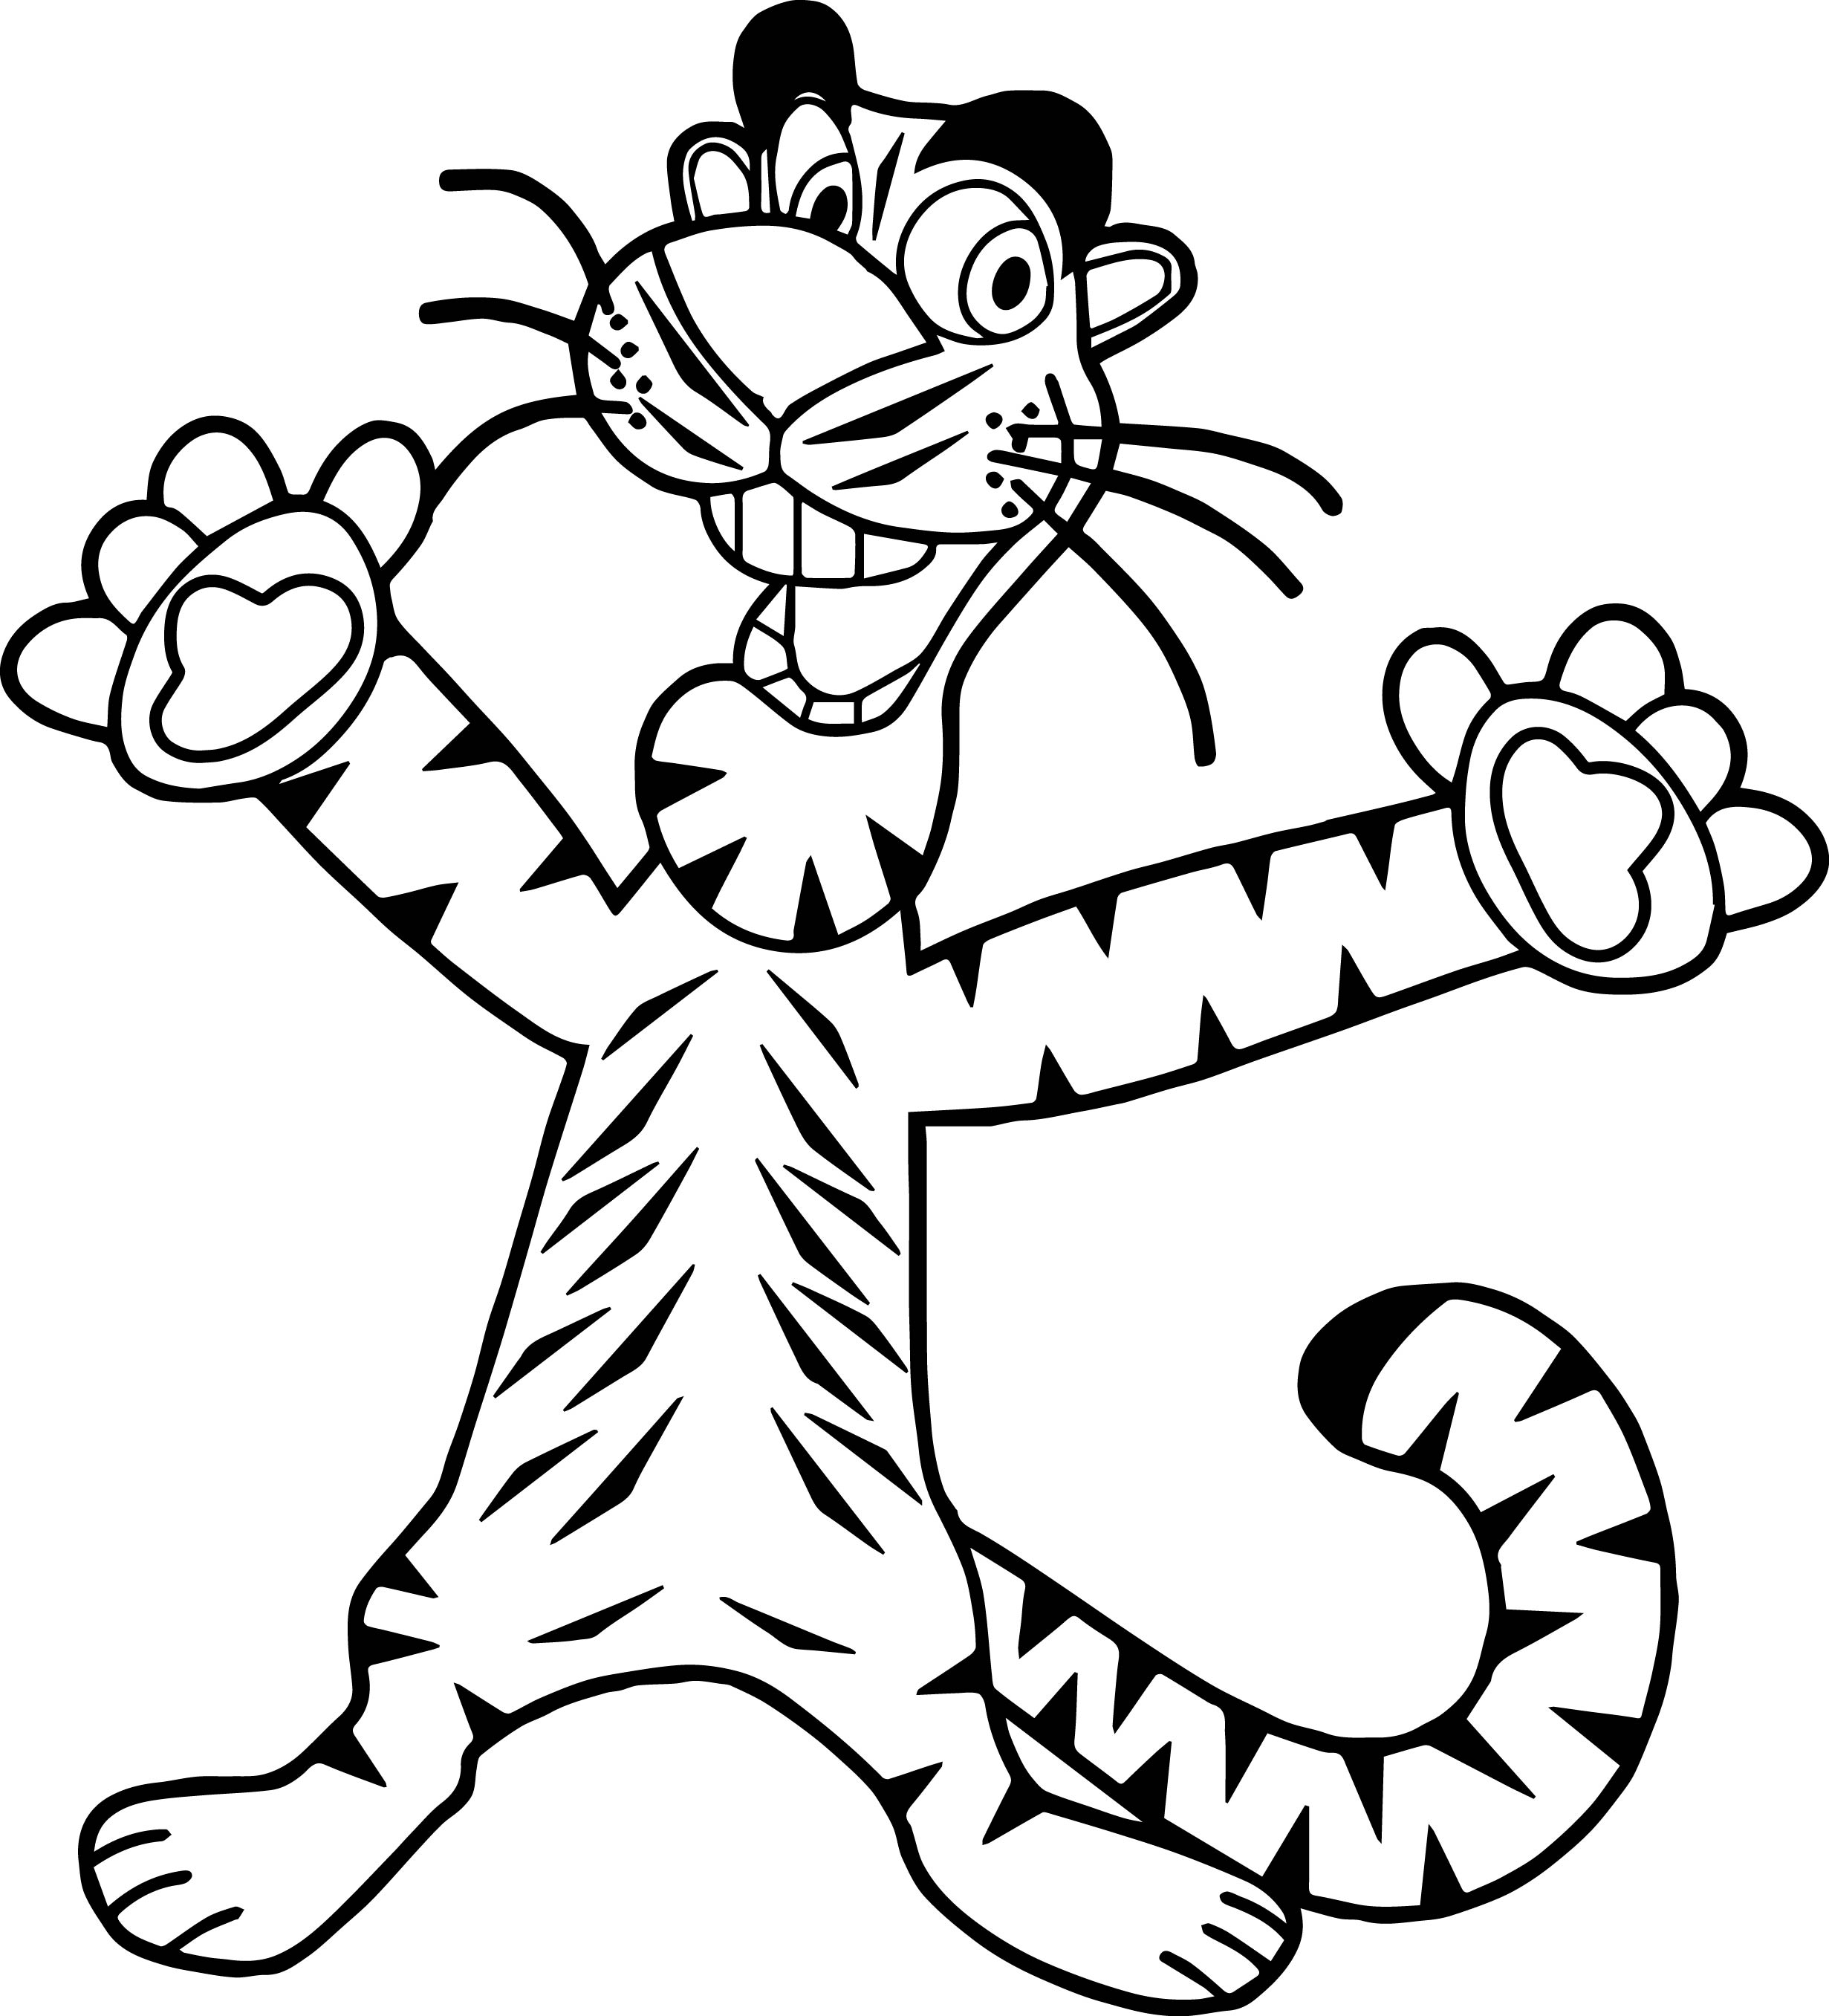 Tiger Football Coloring Pages. Happy Tiger Coloring Page  Wecoloringpage